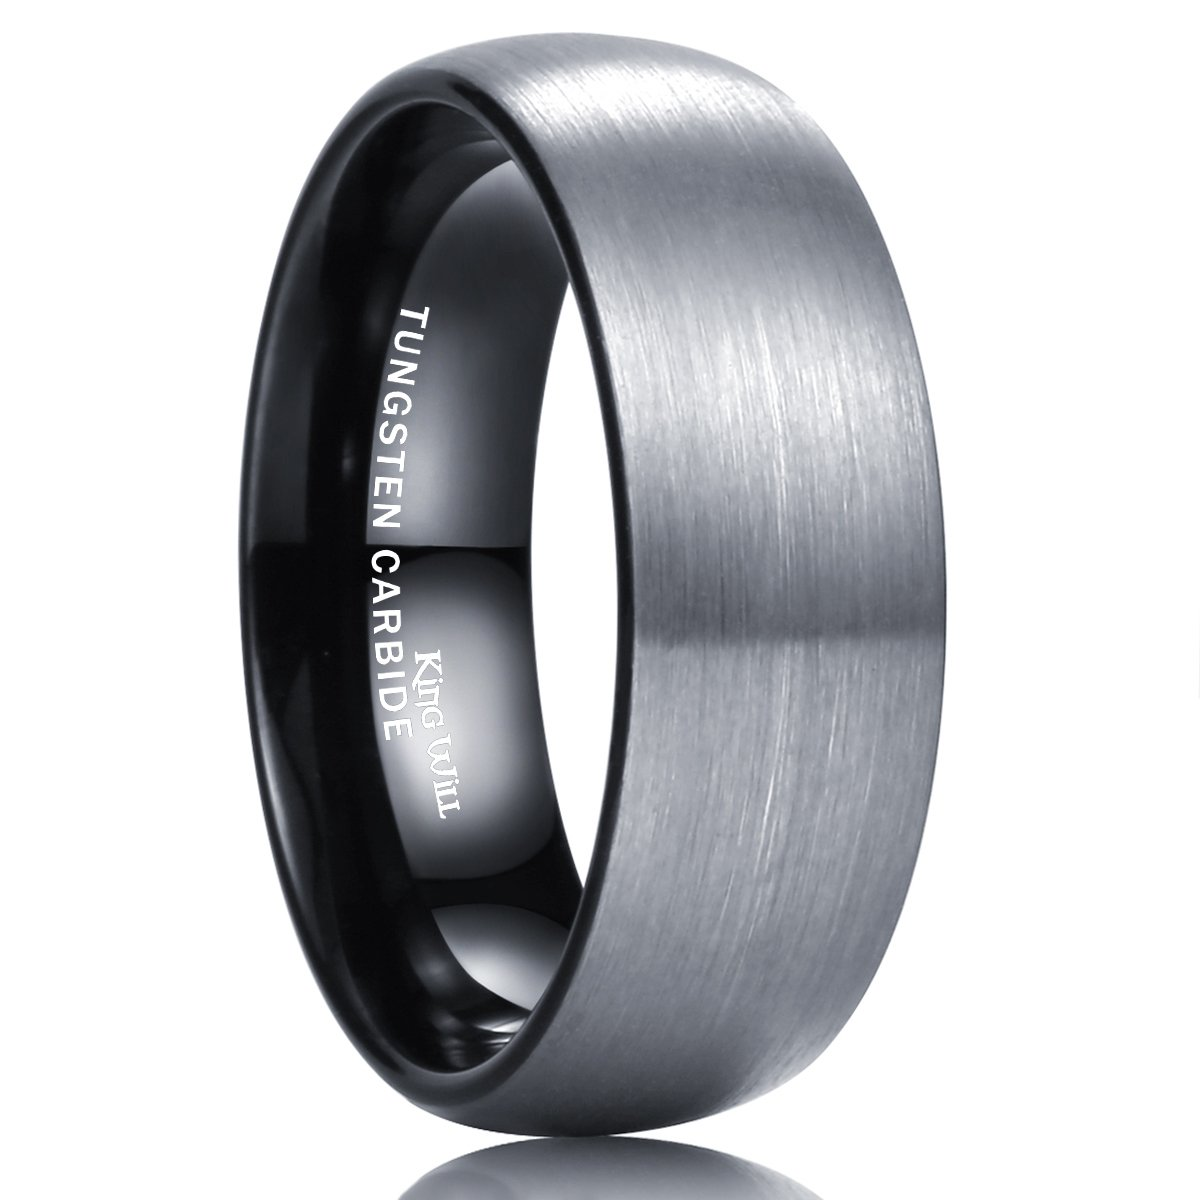 King Will DUO 8mm Black Dome Tungsten Carbide Wedding Band Ring Enamel Polished Finish Comfort Fit R157